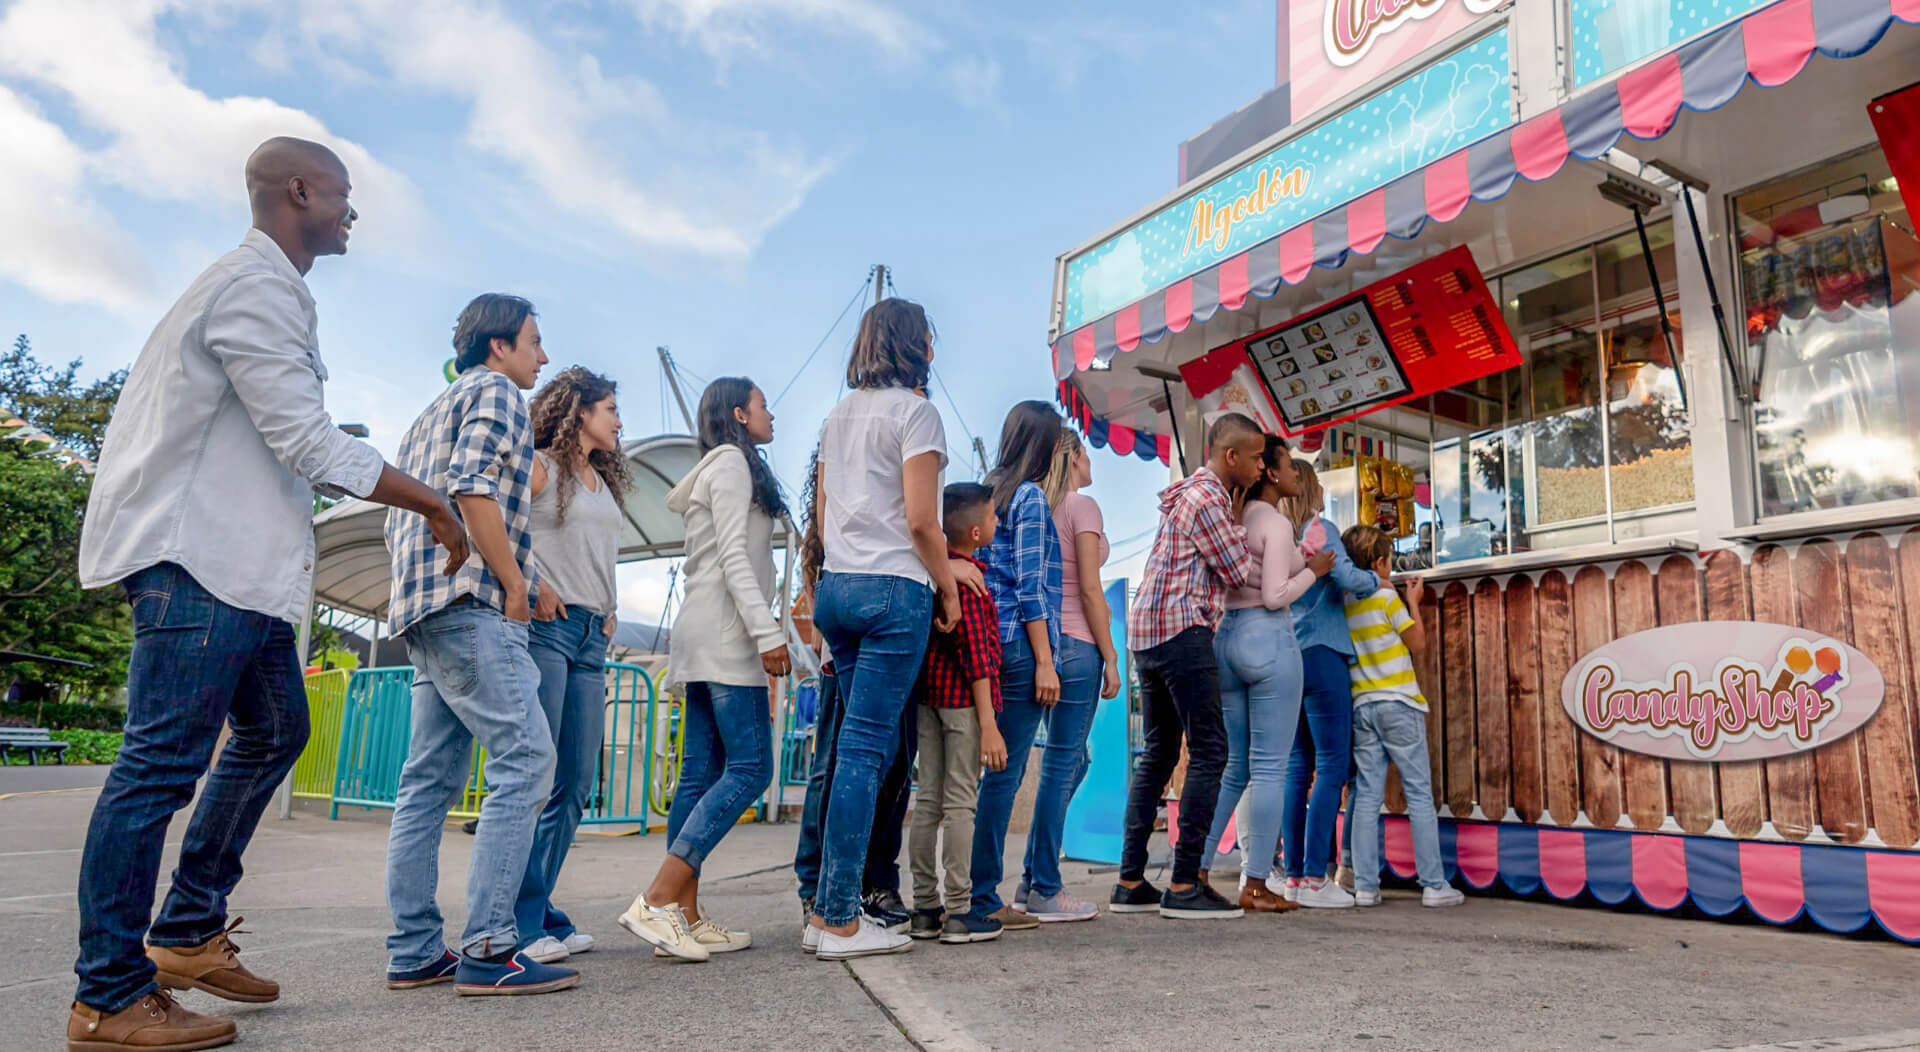 happy people at a funfair lined up to buy food at a candy shop